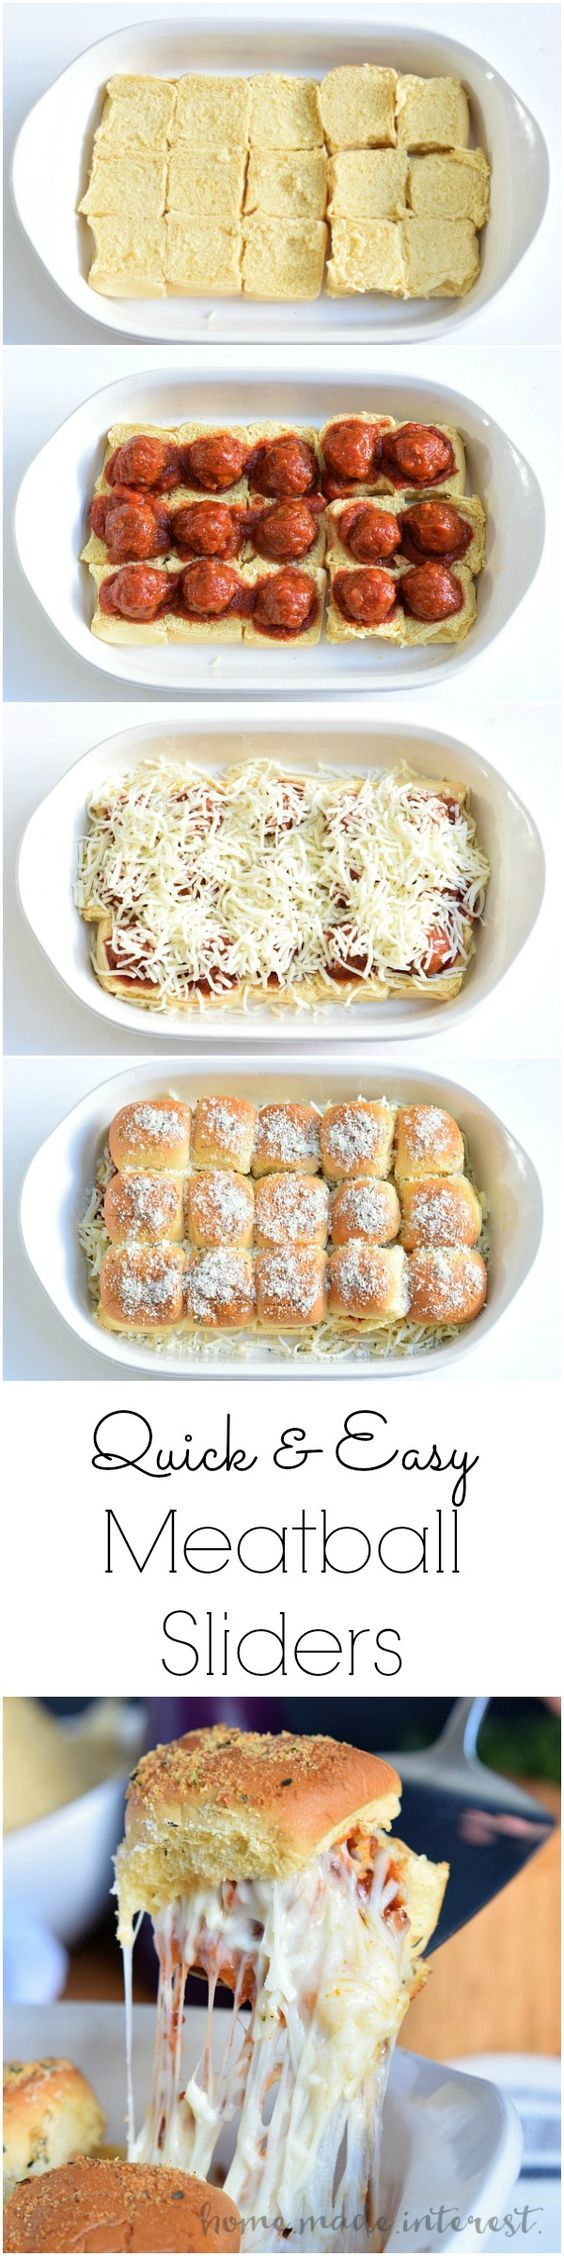 best ideas about Meatball Sliders on Pinterest | Easy slider, Italian ...